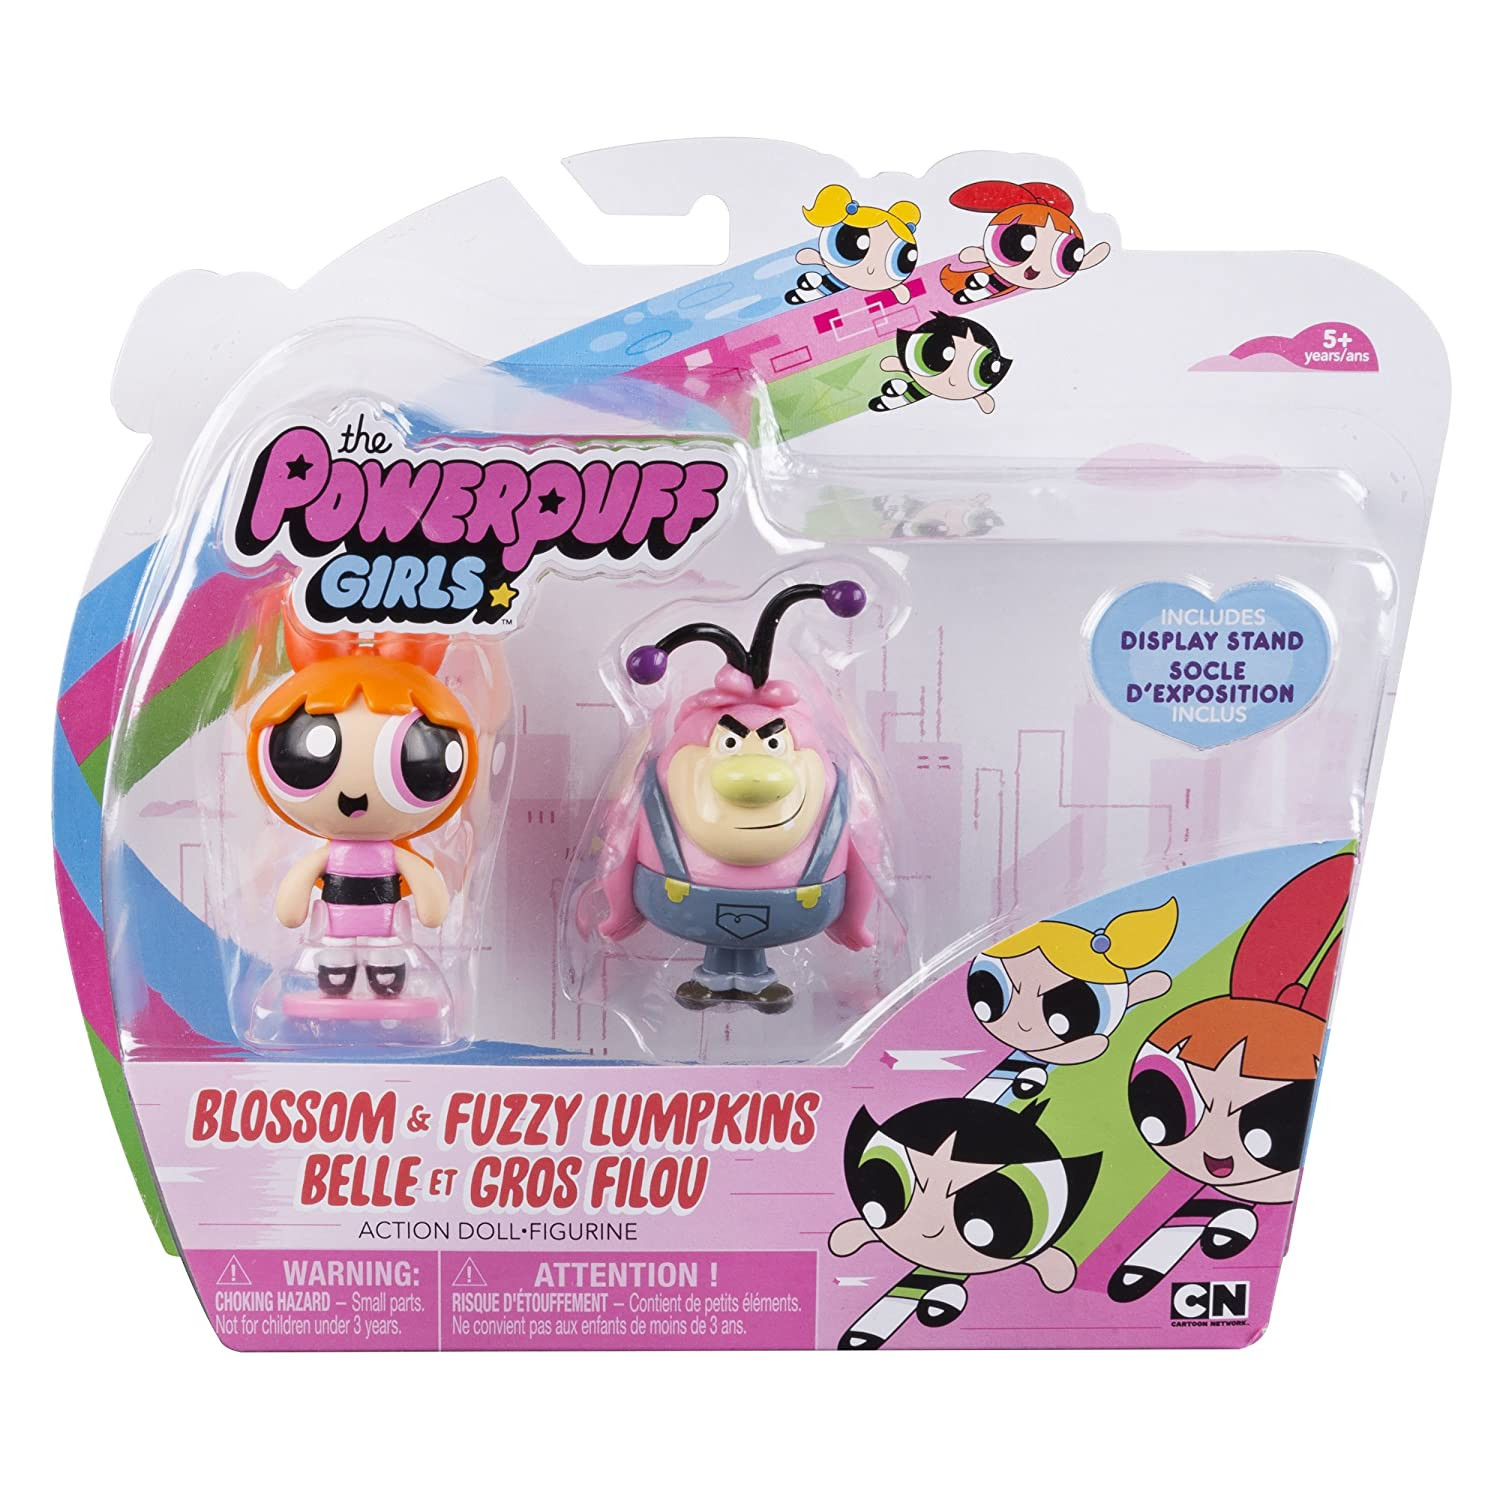 2 inch Action Dolls with Display Stands Blossom /& Fuzzy Lumpkins Spin Master 20073409 2-Pack The Powerpuff Girls